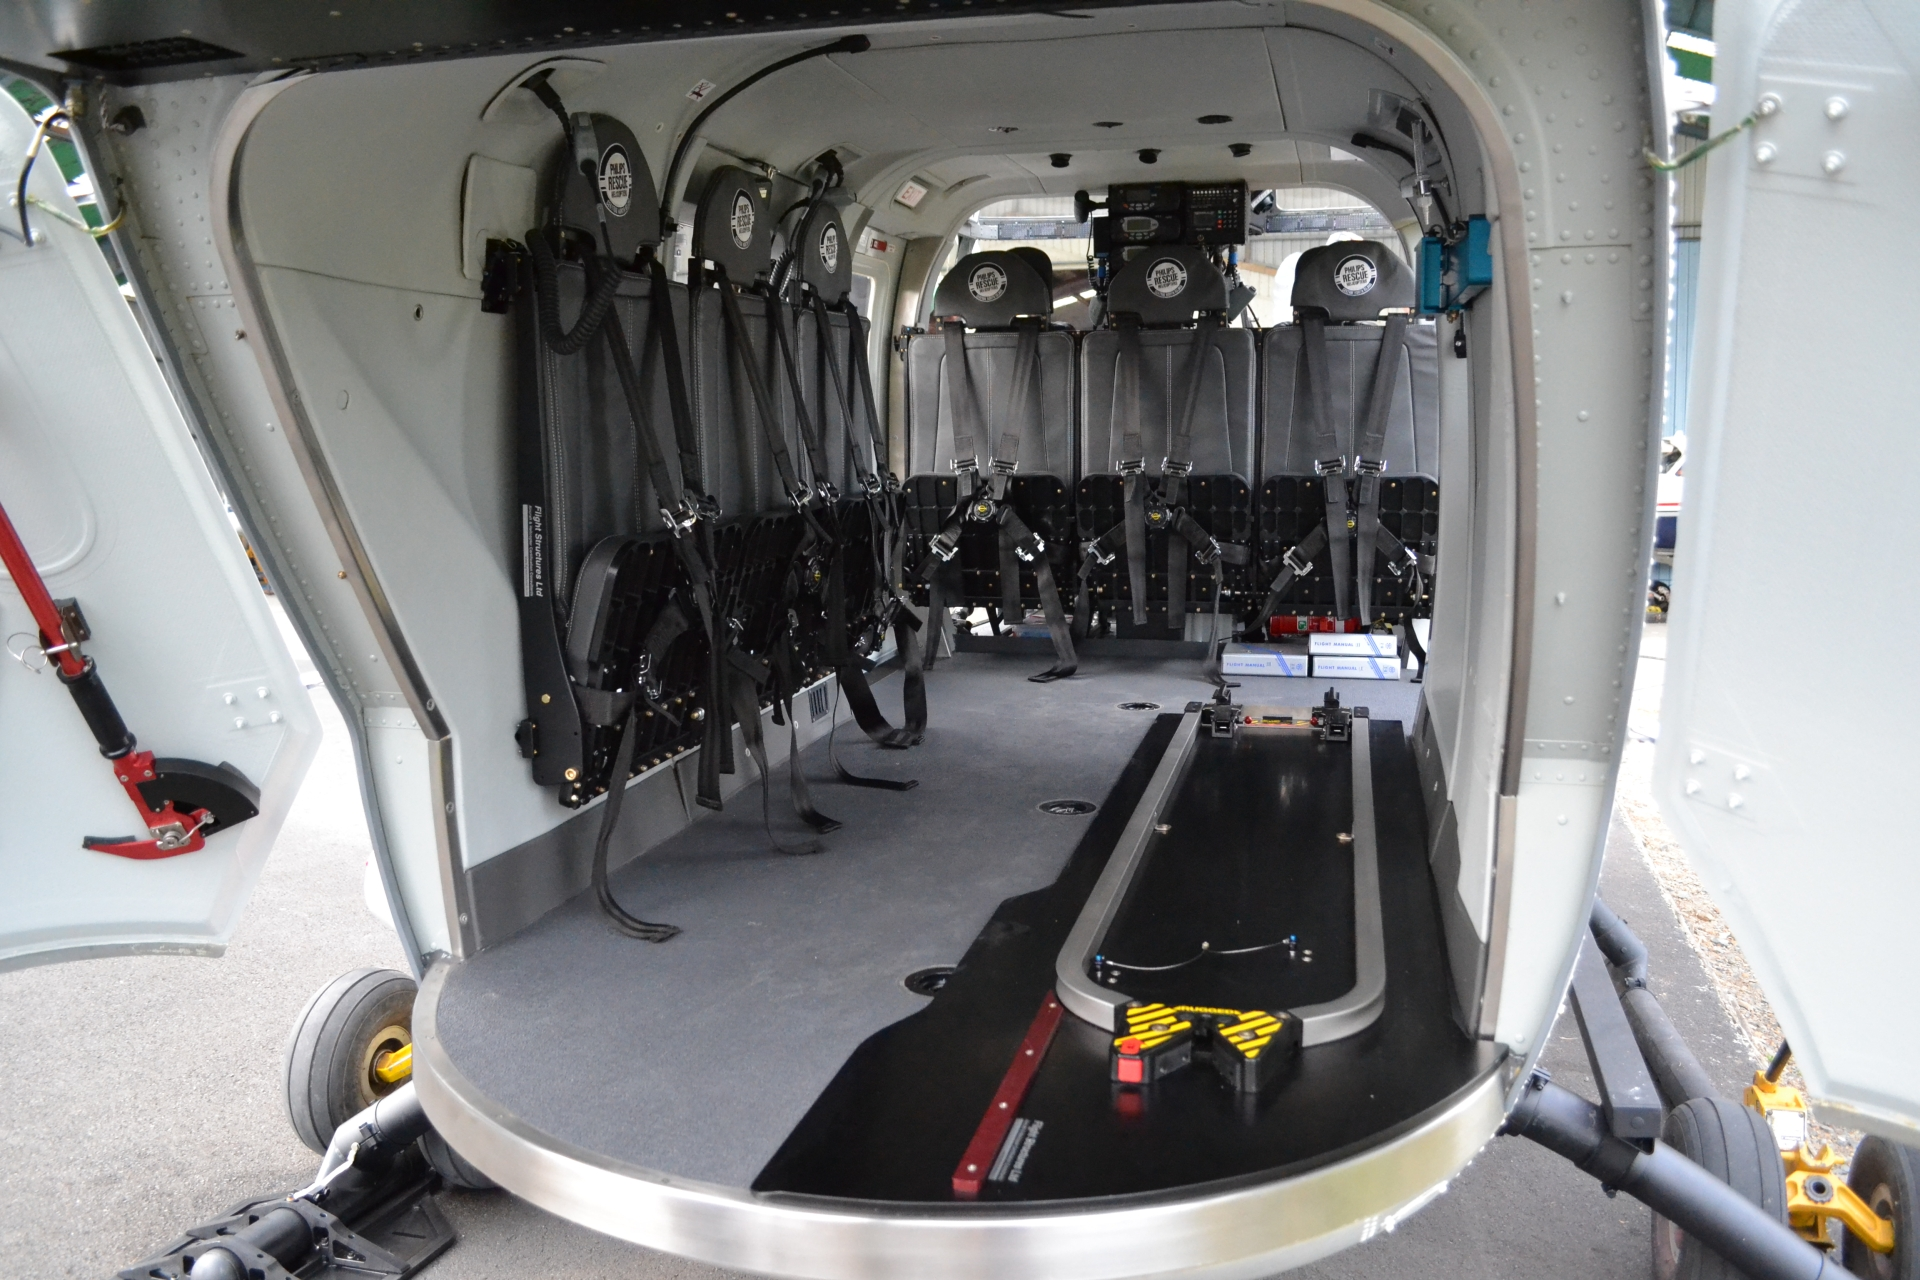 High Density BK117 Seating   Flight Structures has developed high density Cabin Seating specifically for the BK117. With seat fittings hard-pointed onto the cabin wall, the space beneath is clear to be used for medical or search and rescue equipment. The seats are removable so the helicopter can be reconfigured as required.   Key Features:   The seat can be configured in 3, 6 or 9 pax installations  Soft comfortable cushioning;  Compatible with stretcher installation;  Lightweight construction